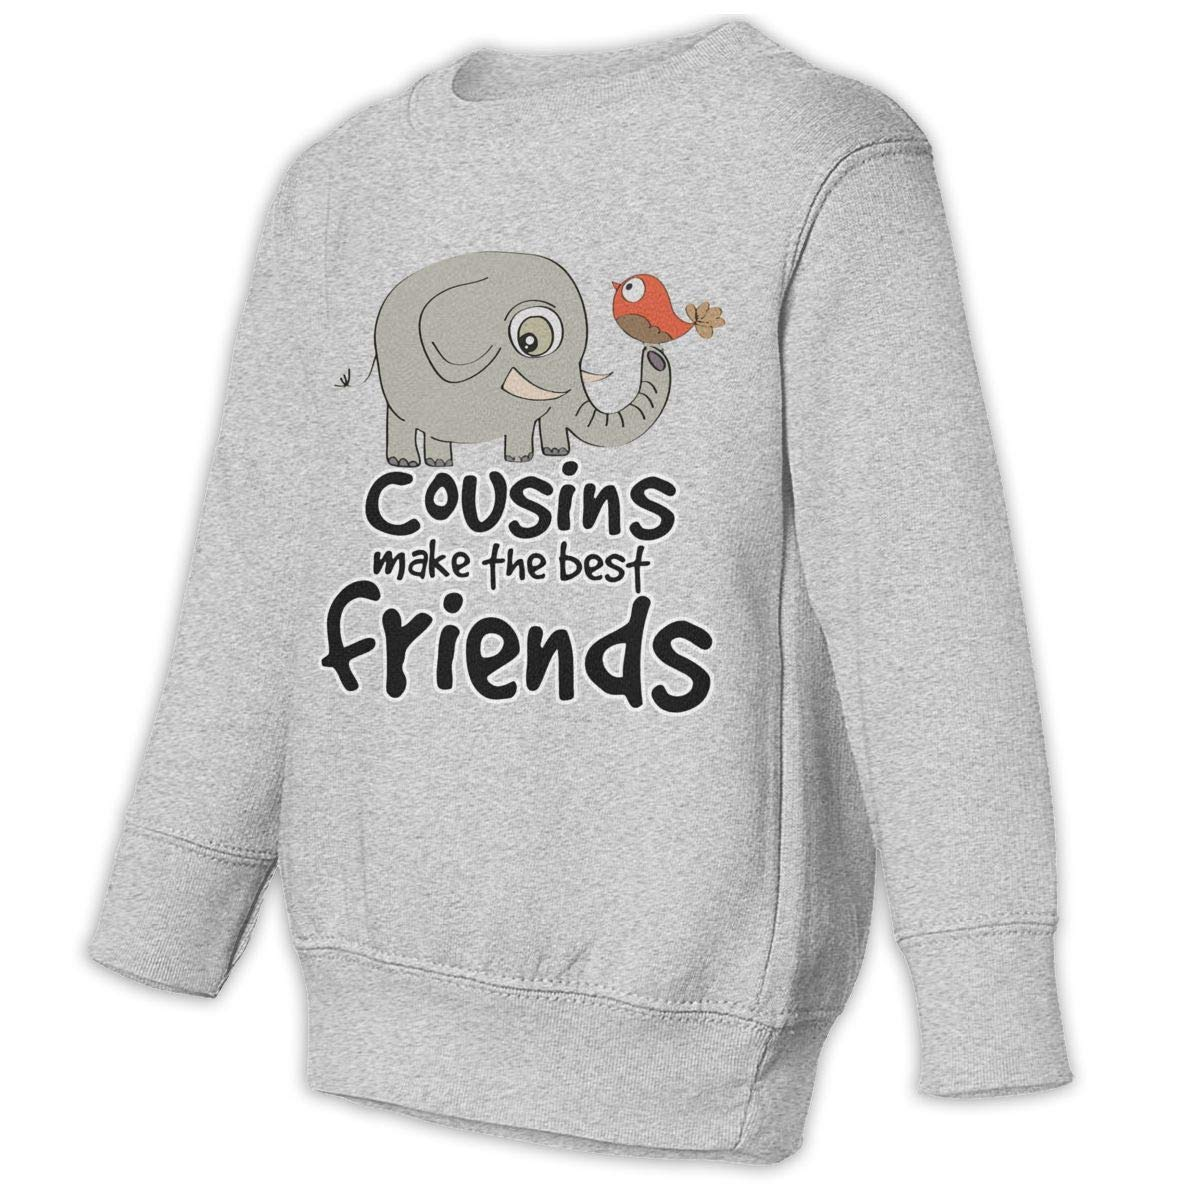 Cousins Make The Best Friends Baby Sweatshirt Fashion Toddler Hoodies Soft Outfits